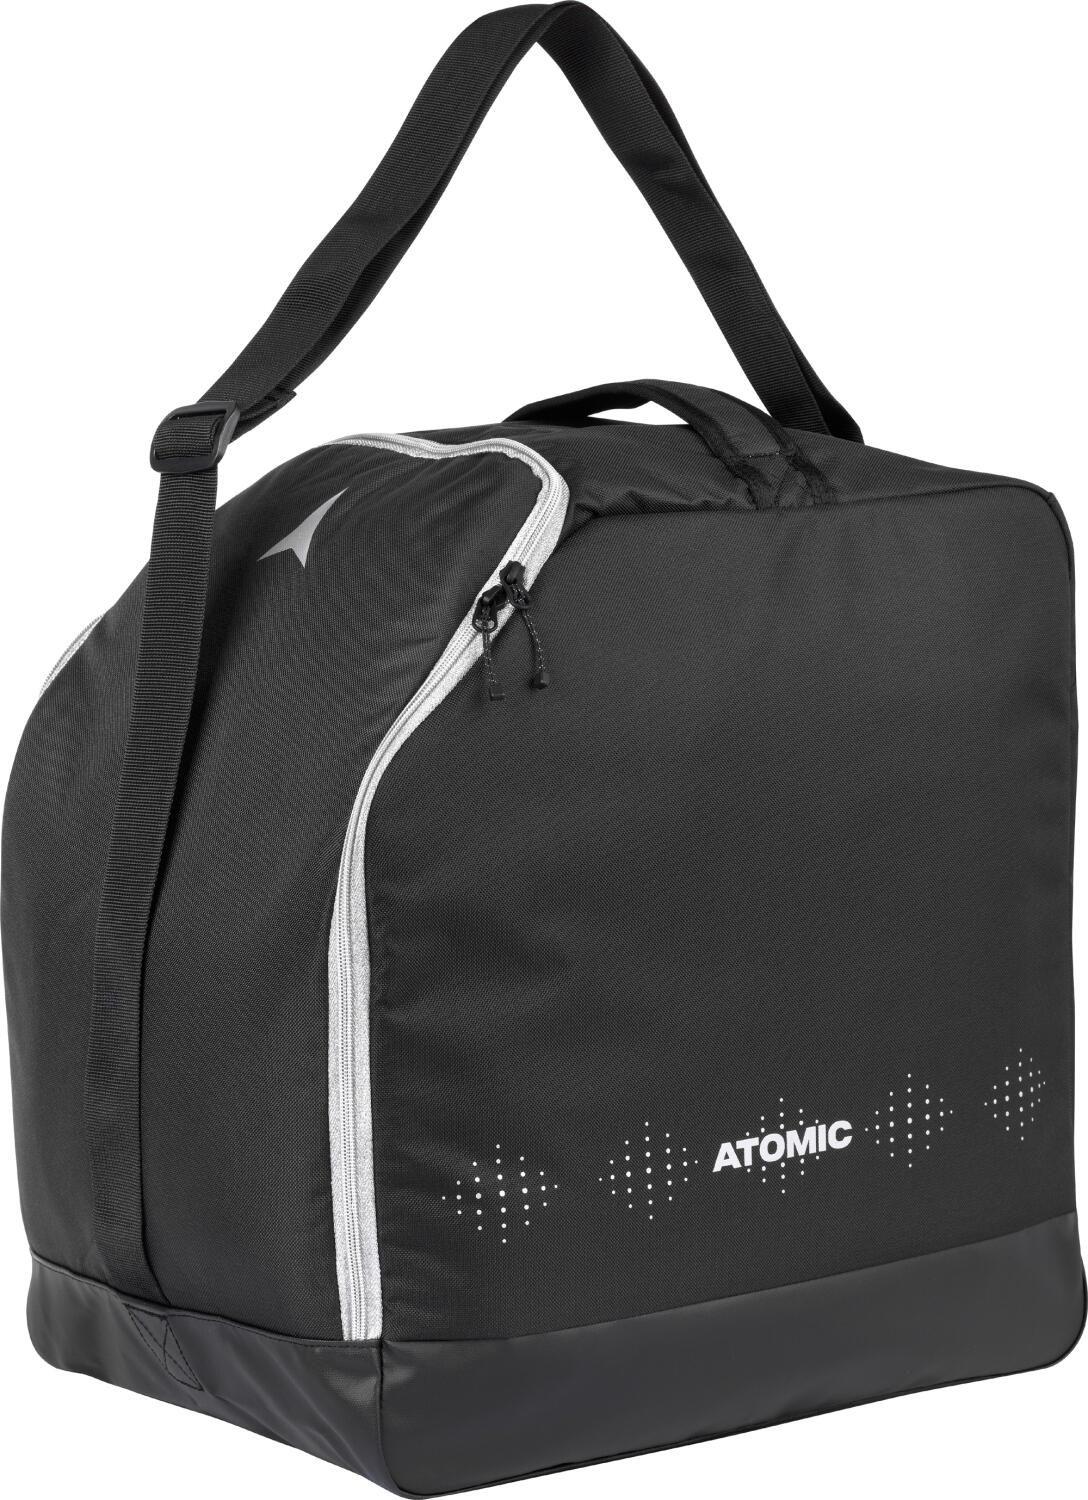 atomic-boot-amp-helmet-bag-cloud-tasche-farbe-black-silver-